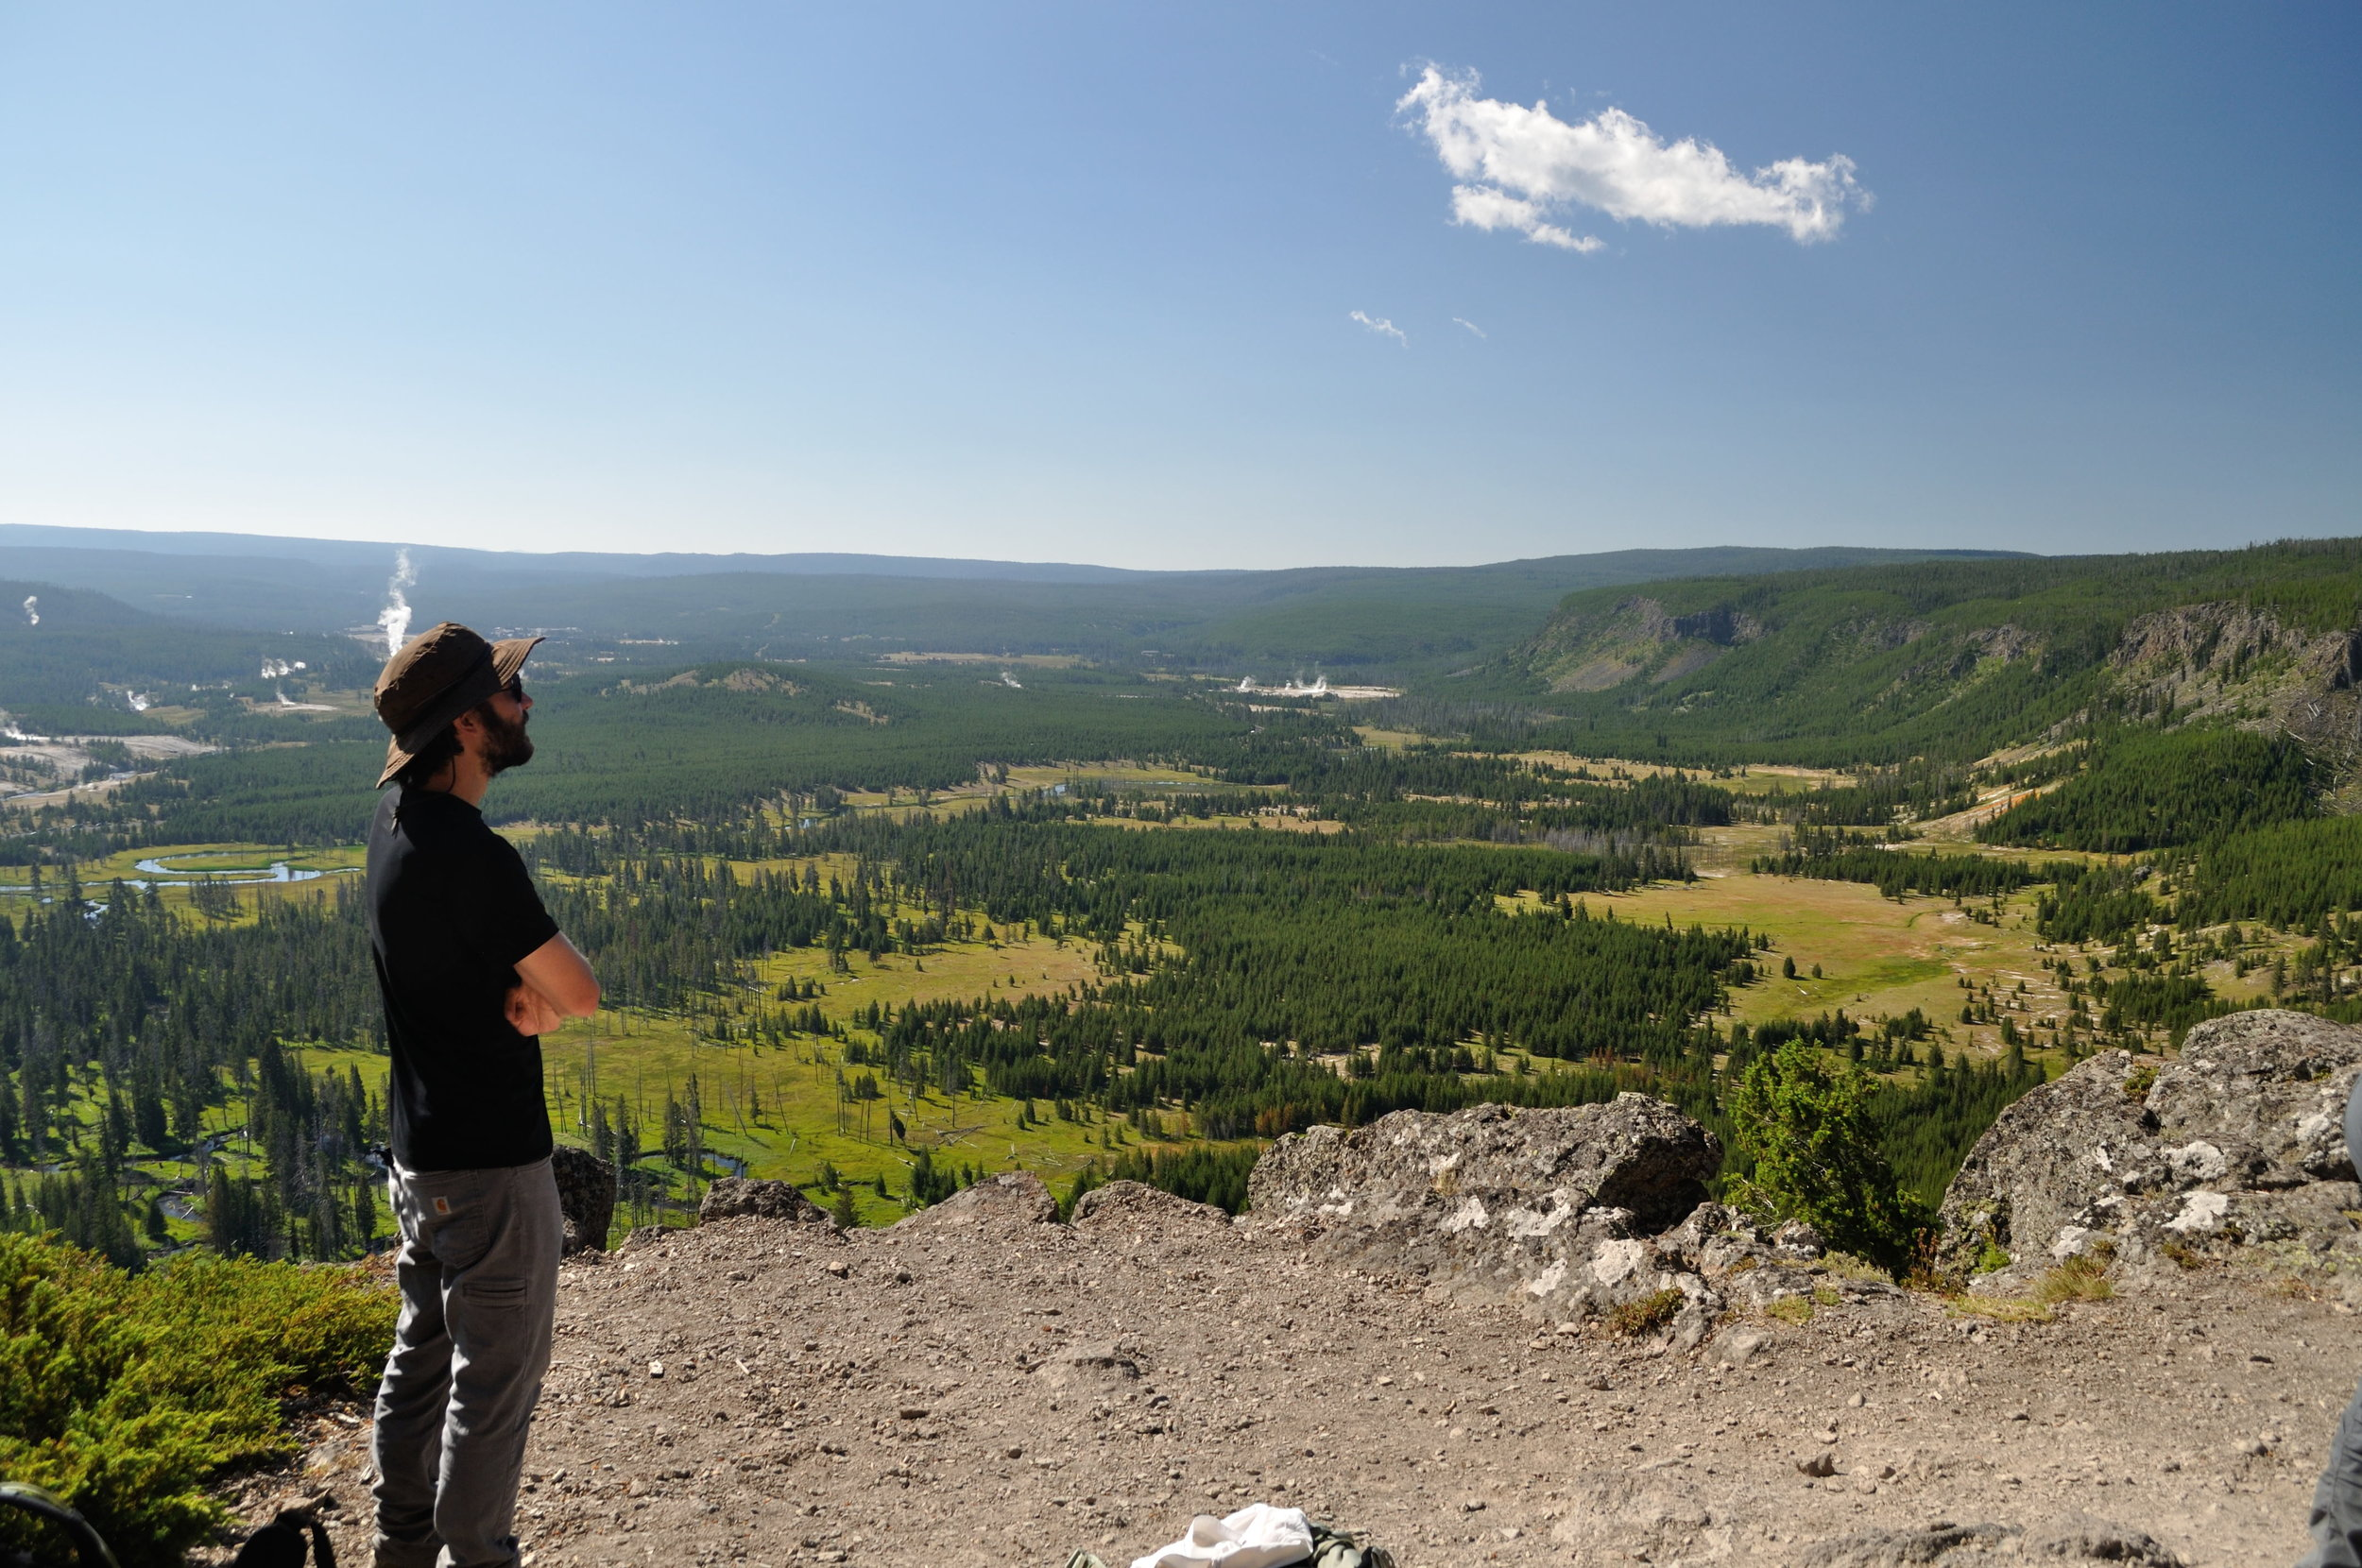 Graduate student Elijah Lee looking out over one of his study areas in Yellowstone National Park